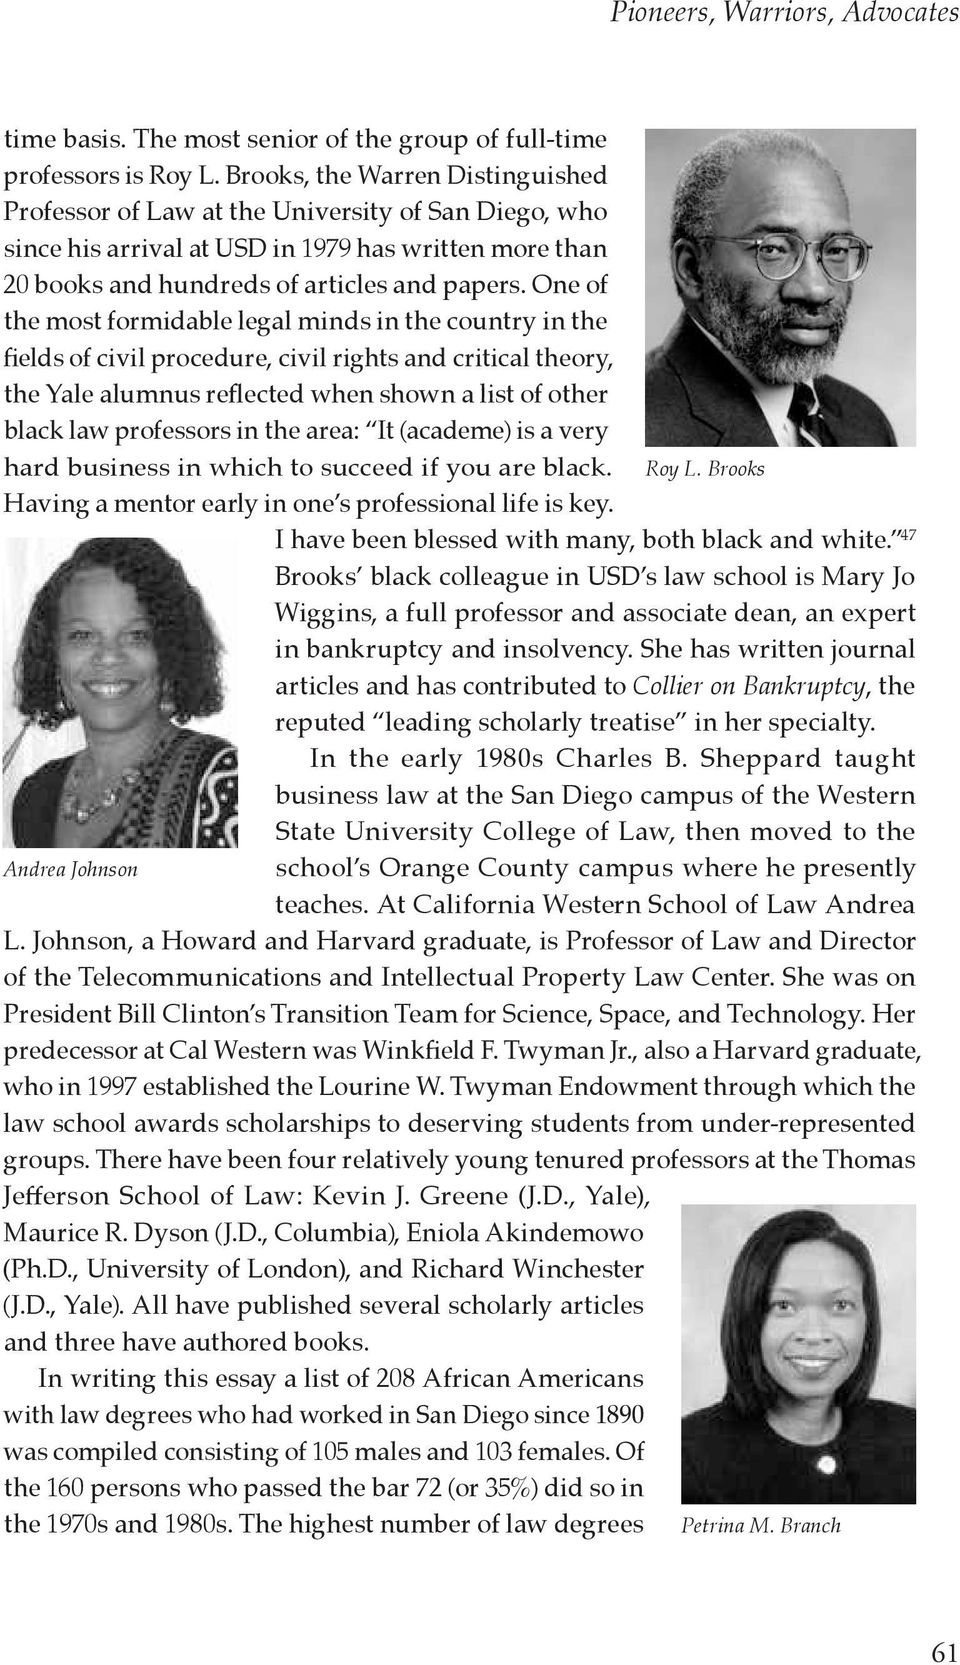 One of the most formidable legal minds in the country in the fields of civil procedure, civil rights and critical theory, the Yale alumnus reflected when shown a list of other black law professors in